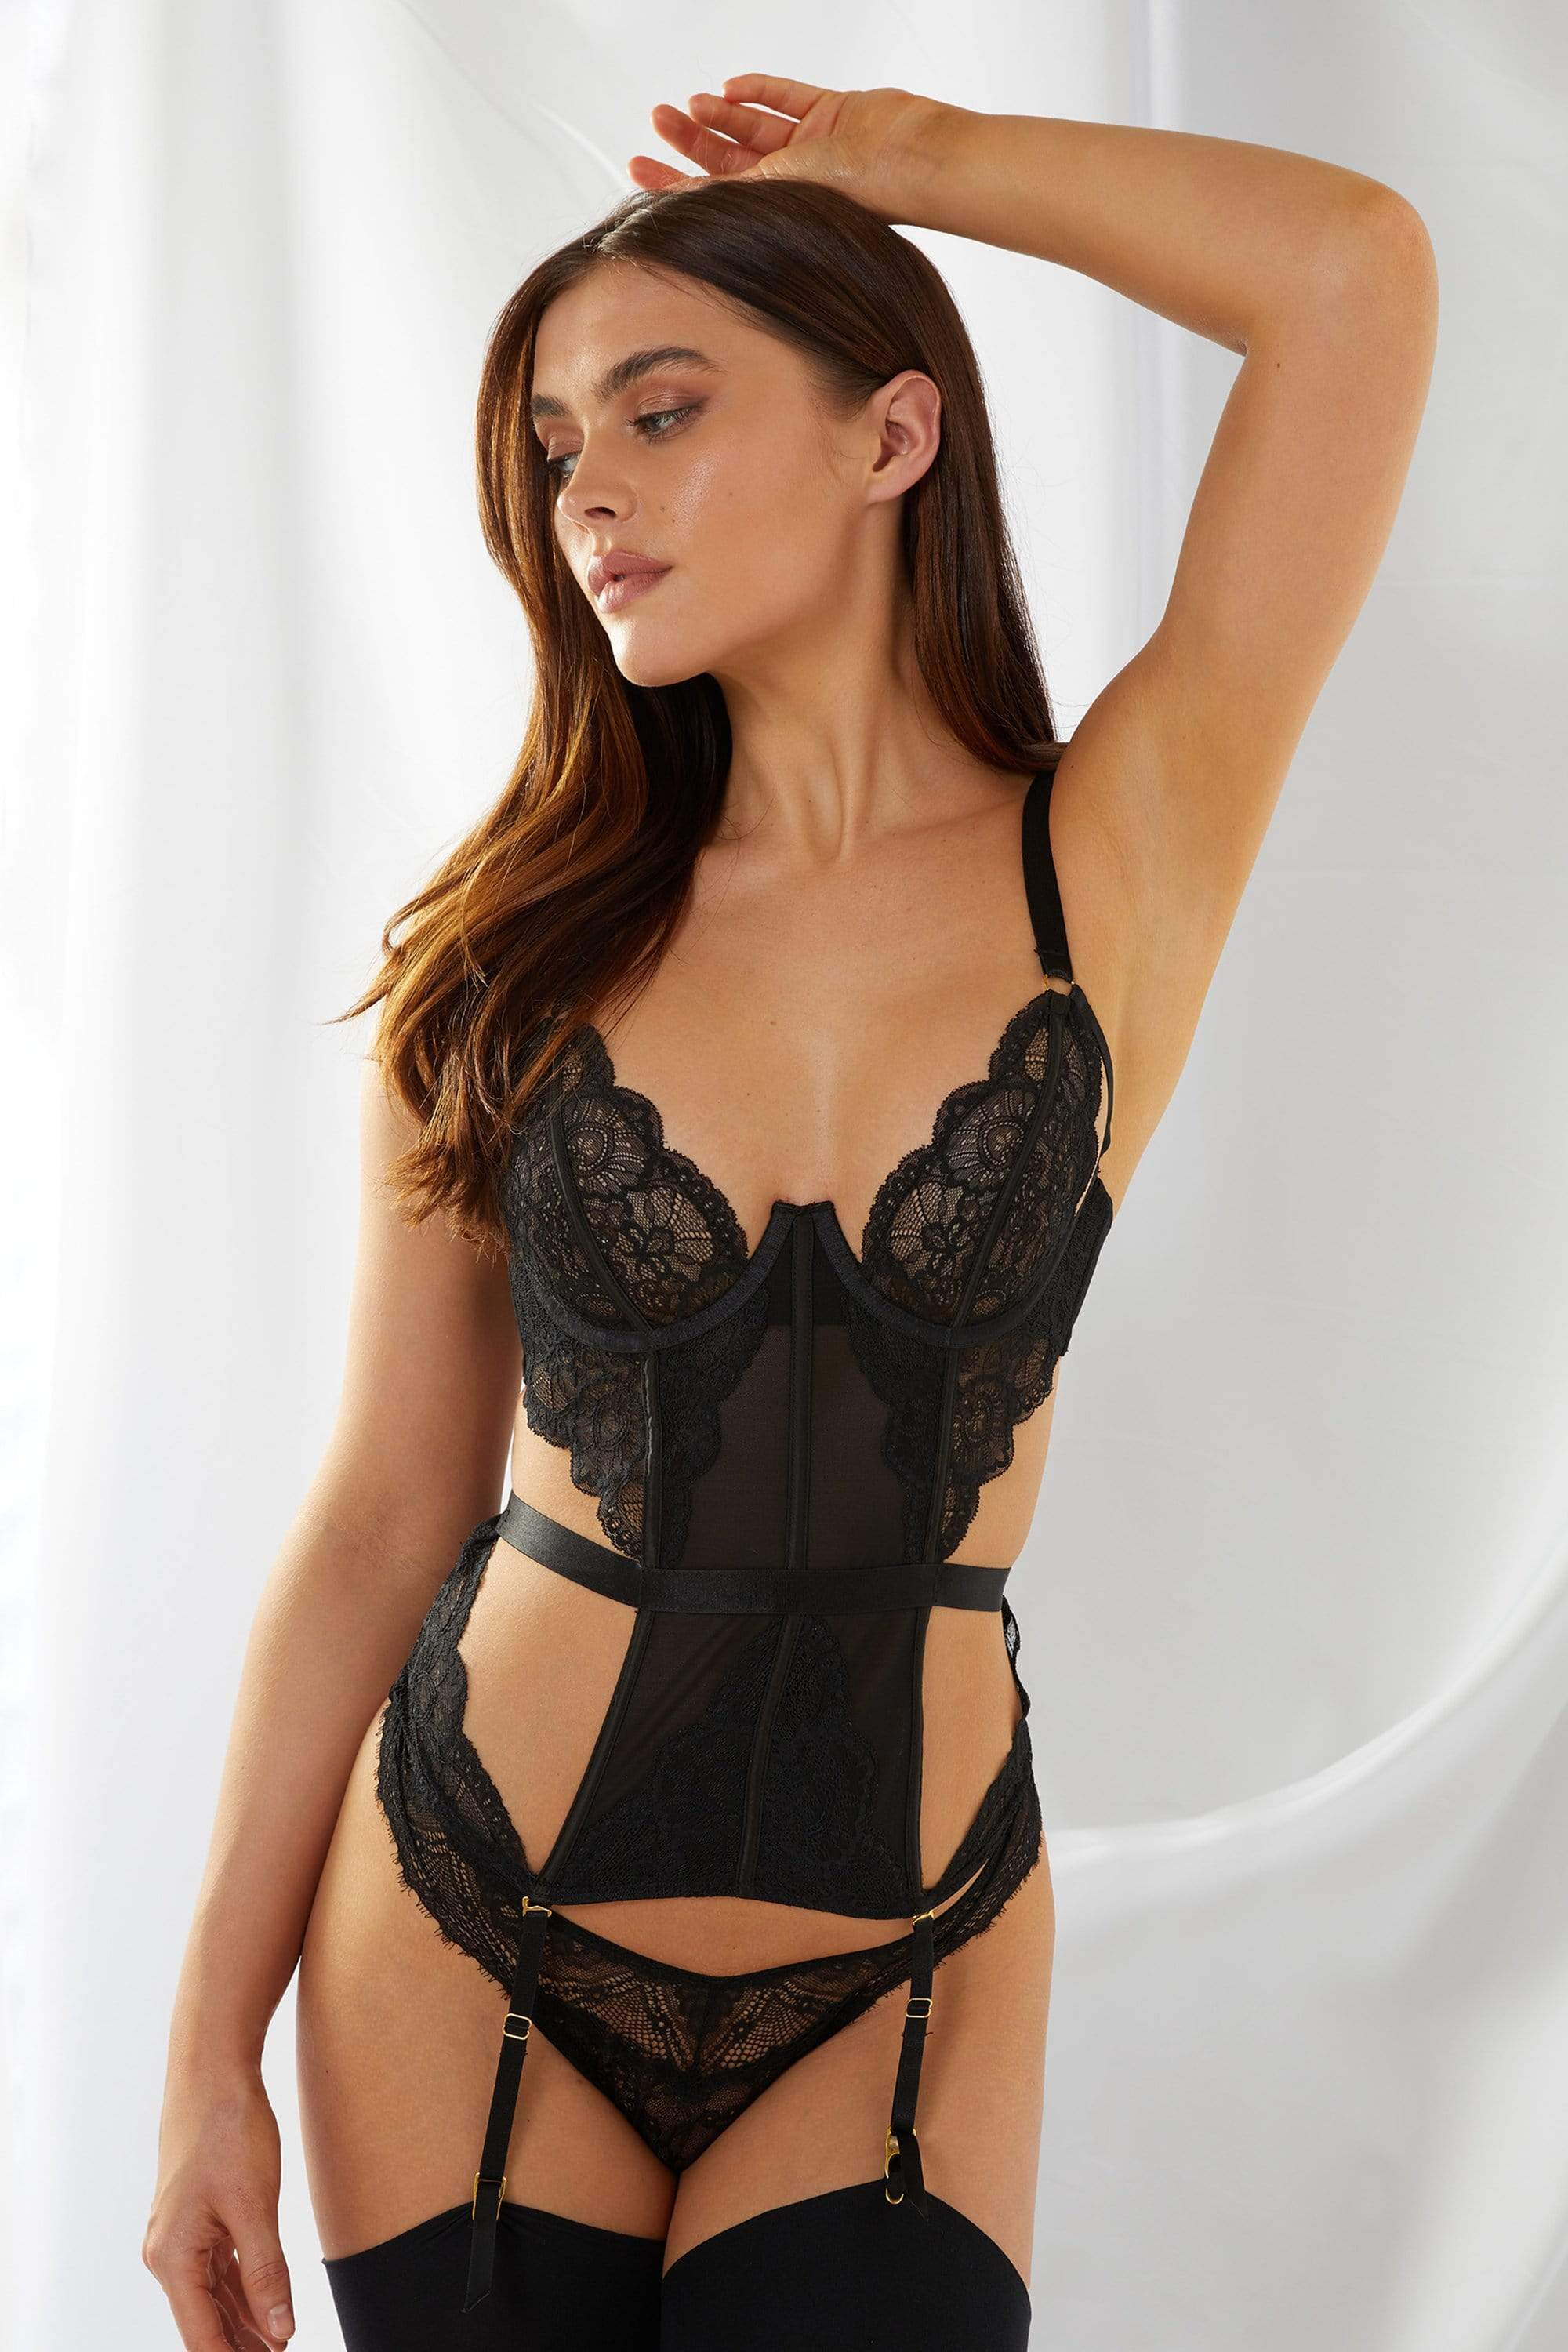 Wolf & Whistle Paola Black Lace Basque 32B